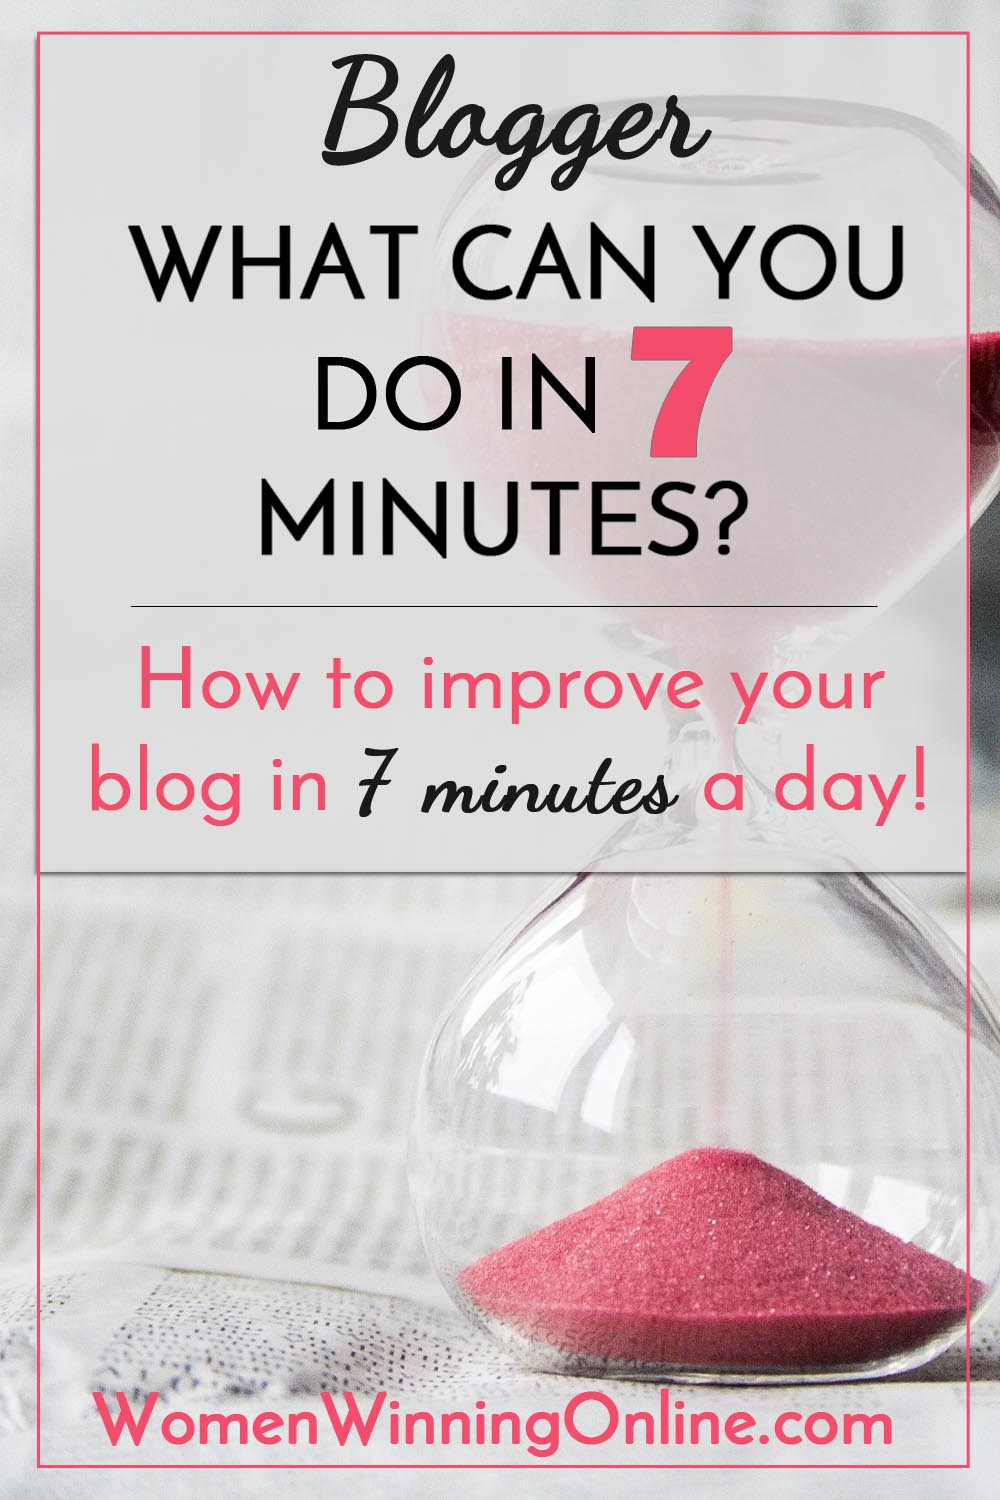 How to grow your blog in 7 minutes a day